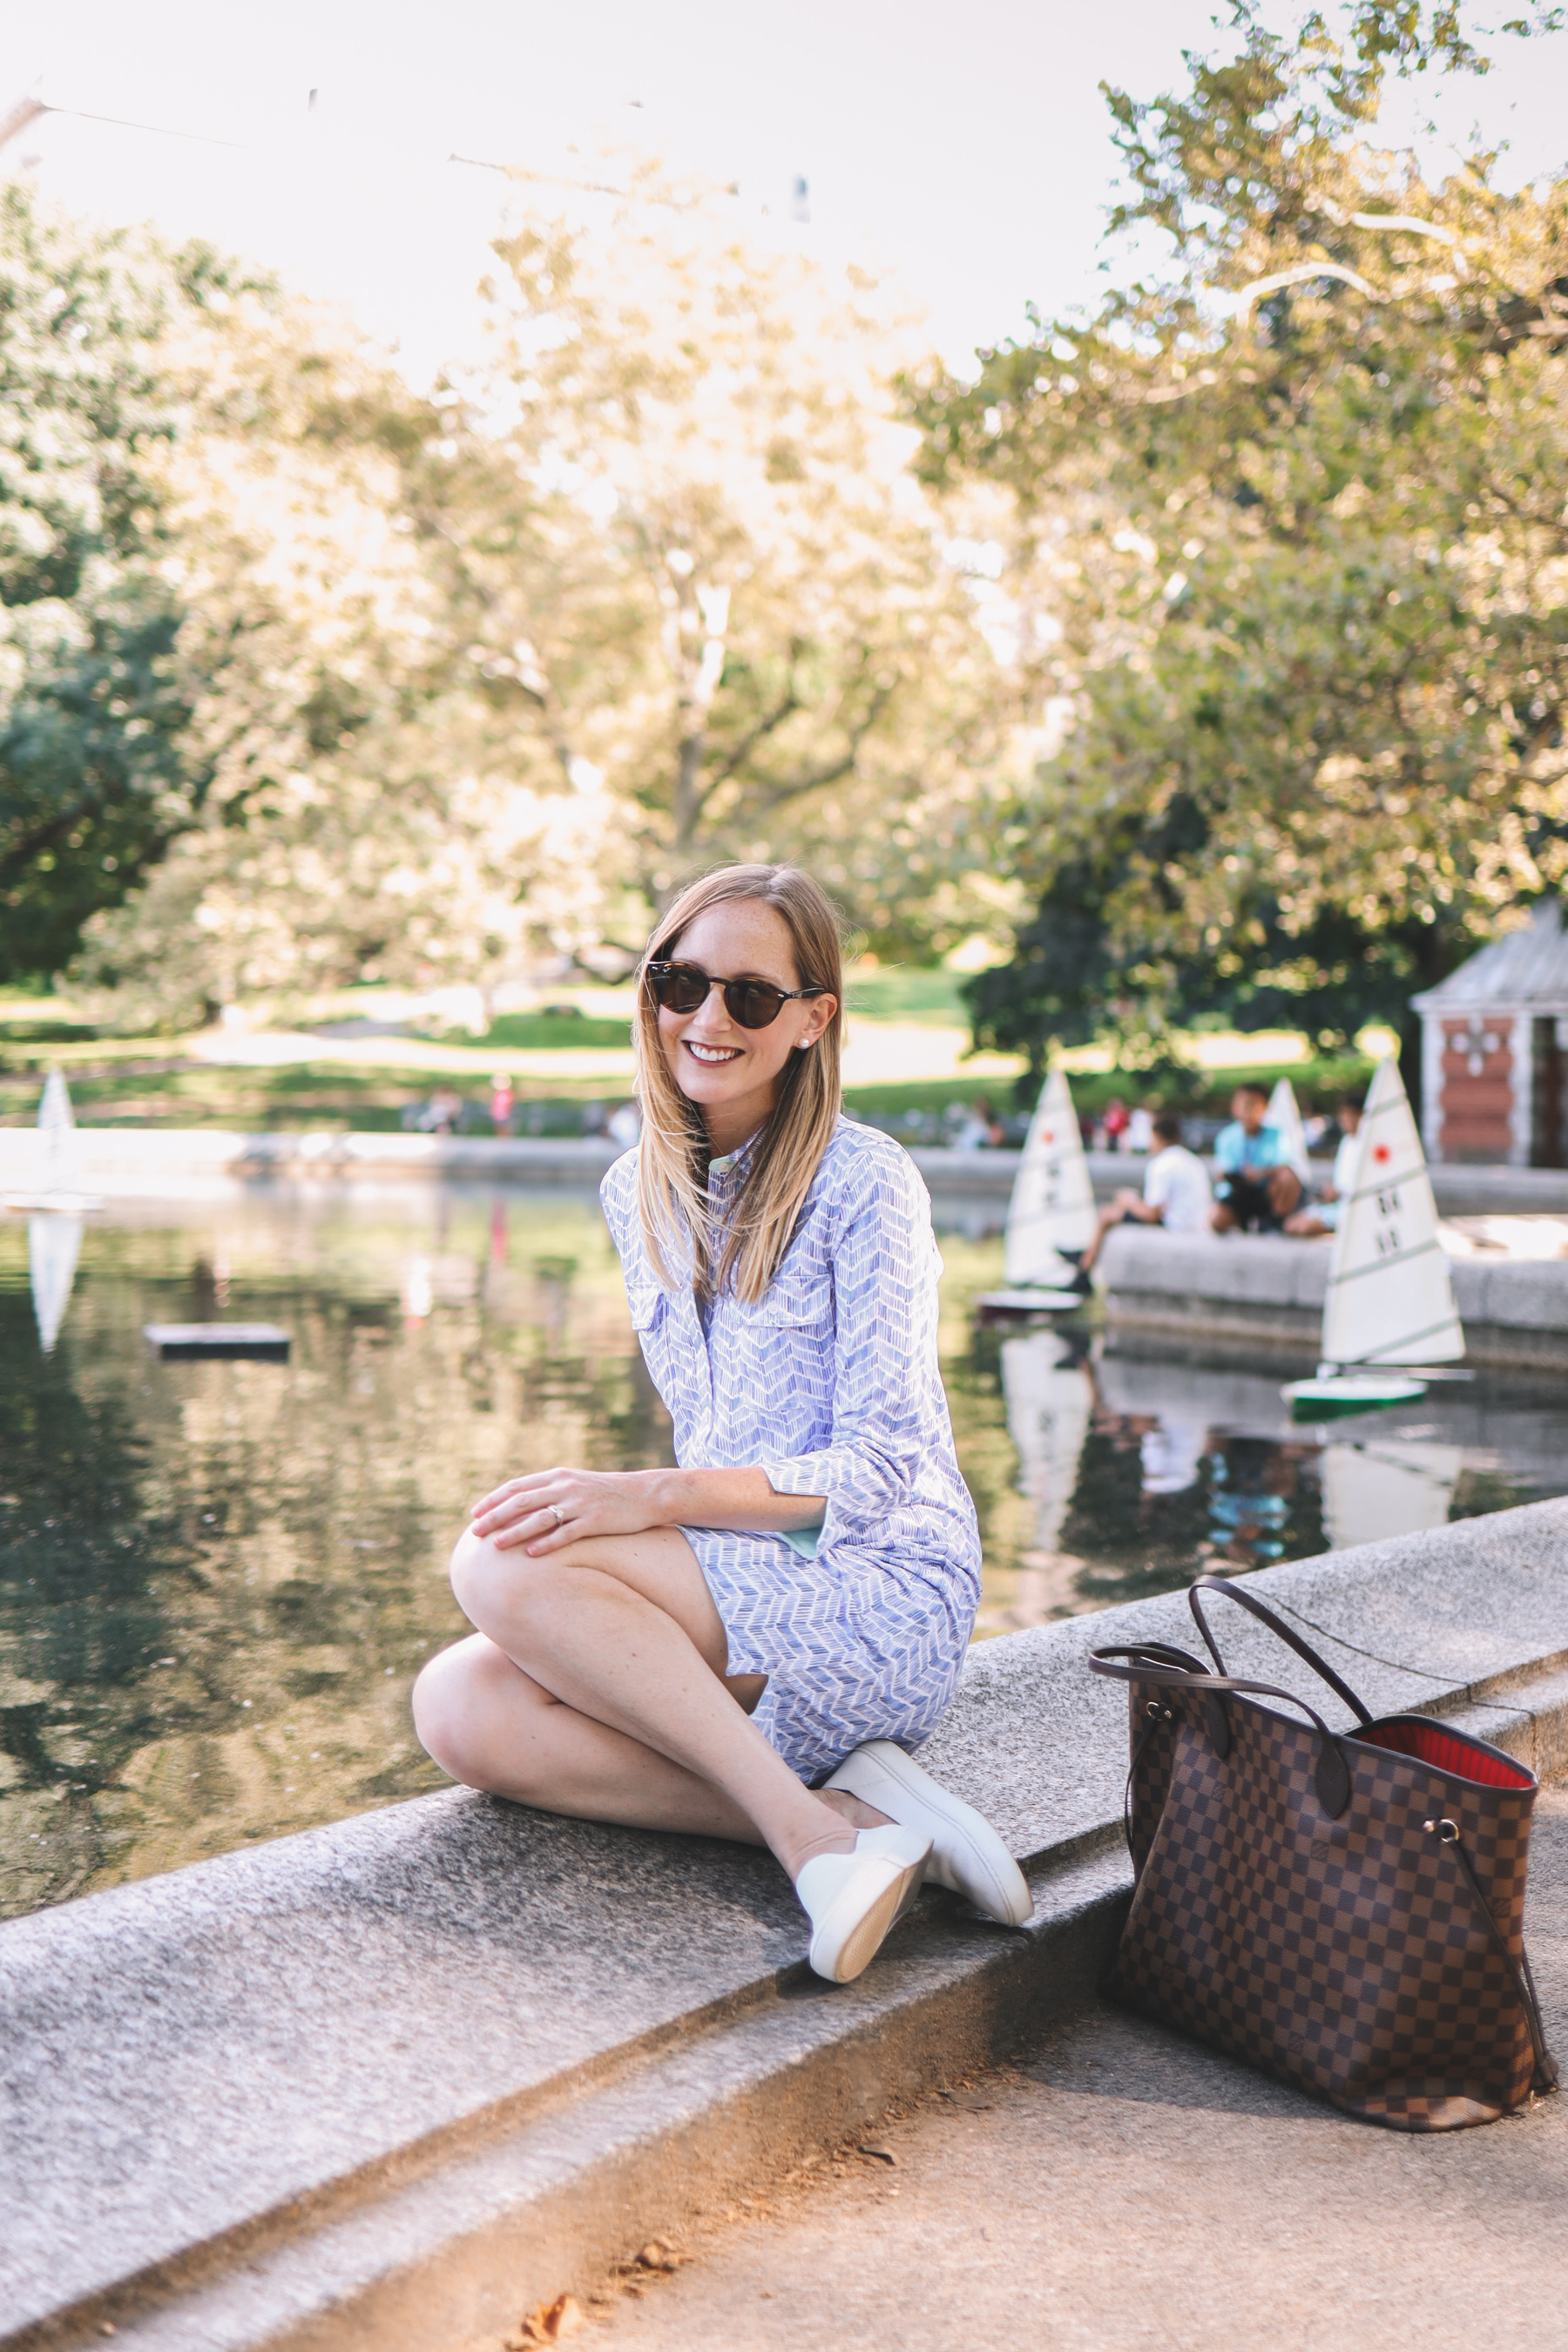 Vineyard Vines dress by the central park ponds